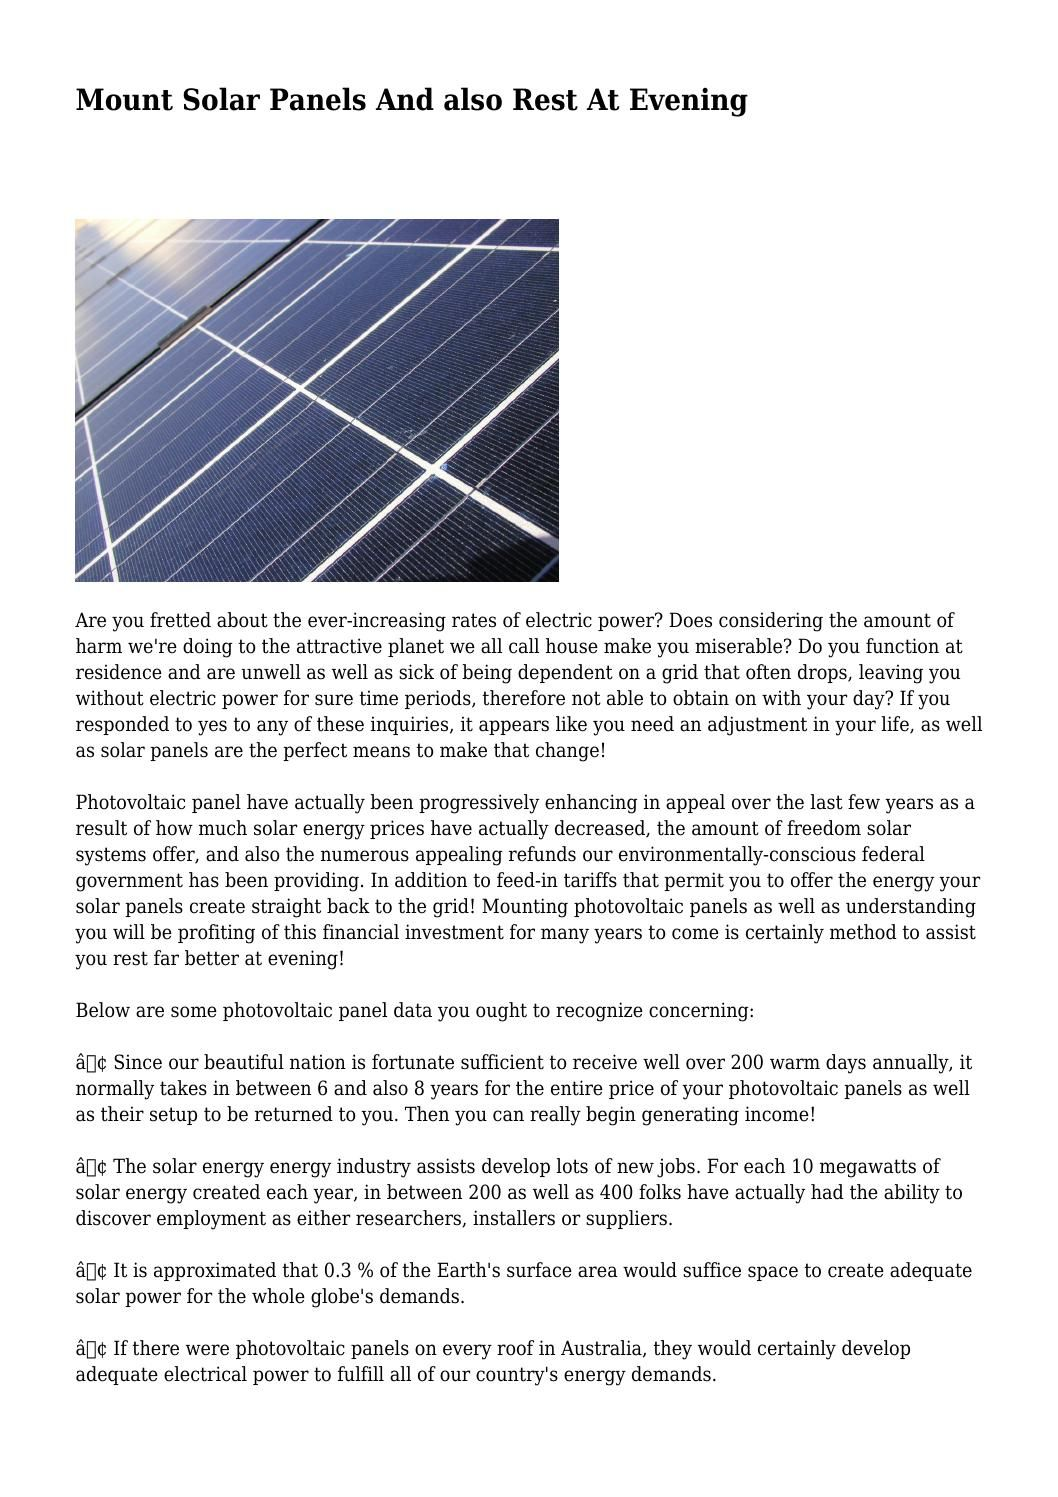 Mount Solar Panels And Also Rest At Evening Solar Panels Solar Solar Energy Cost